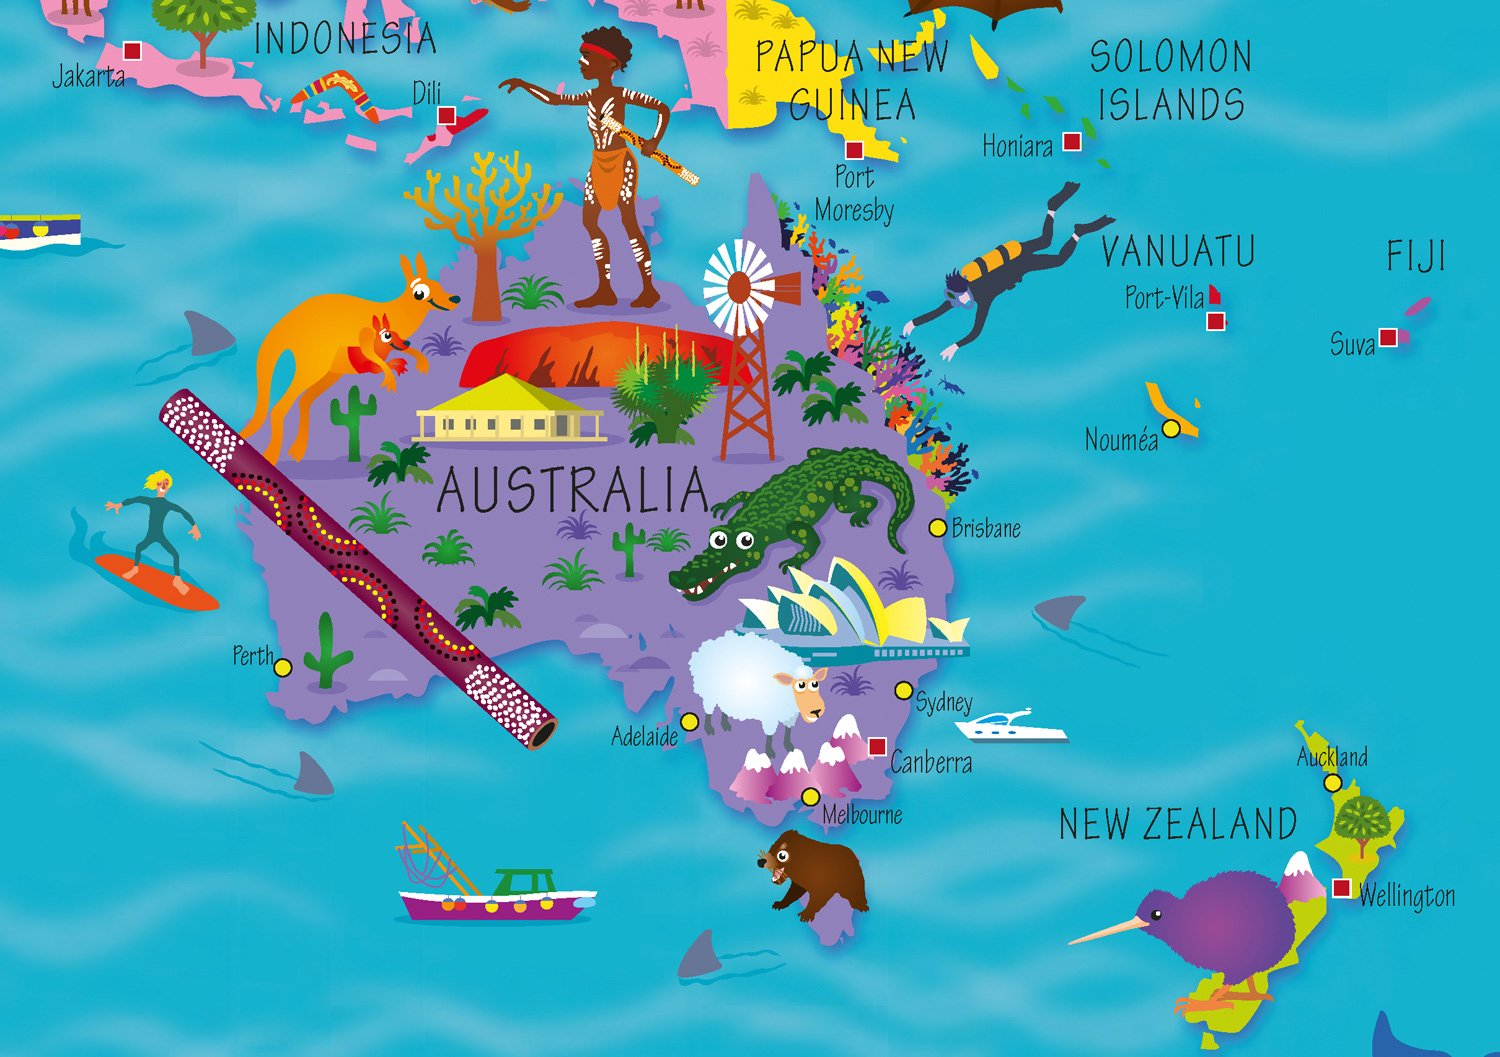 Buy collins childrens world map book online at low prices in buy collins childrens world map book online at low prices in india collins childrens world map reviews ratings amazon gumiabroncs Images